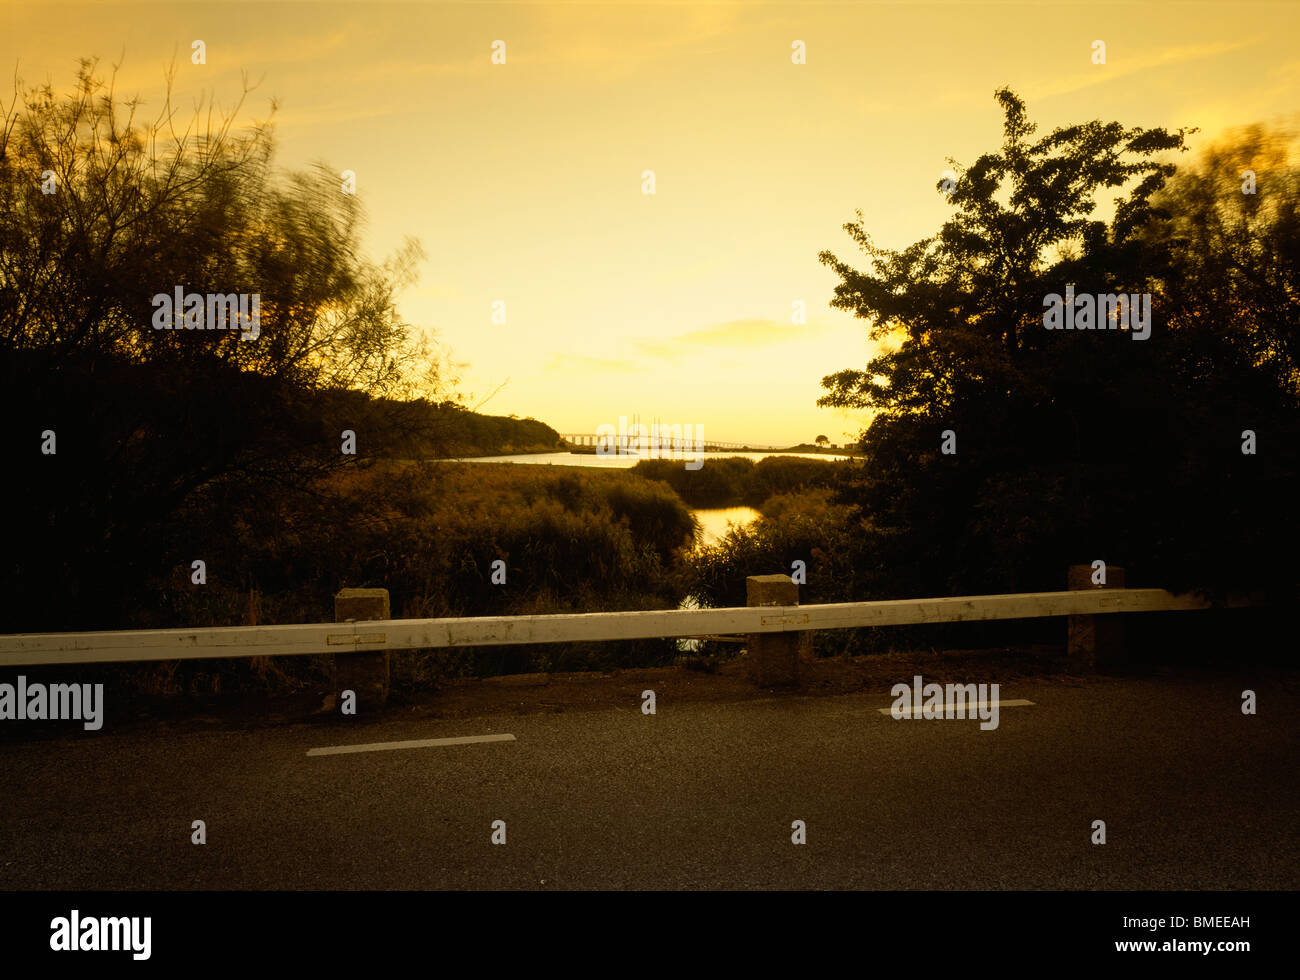 Road with view of river in background at dawn - Stock Image